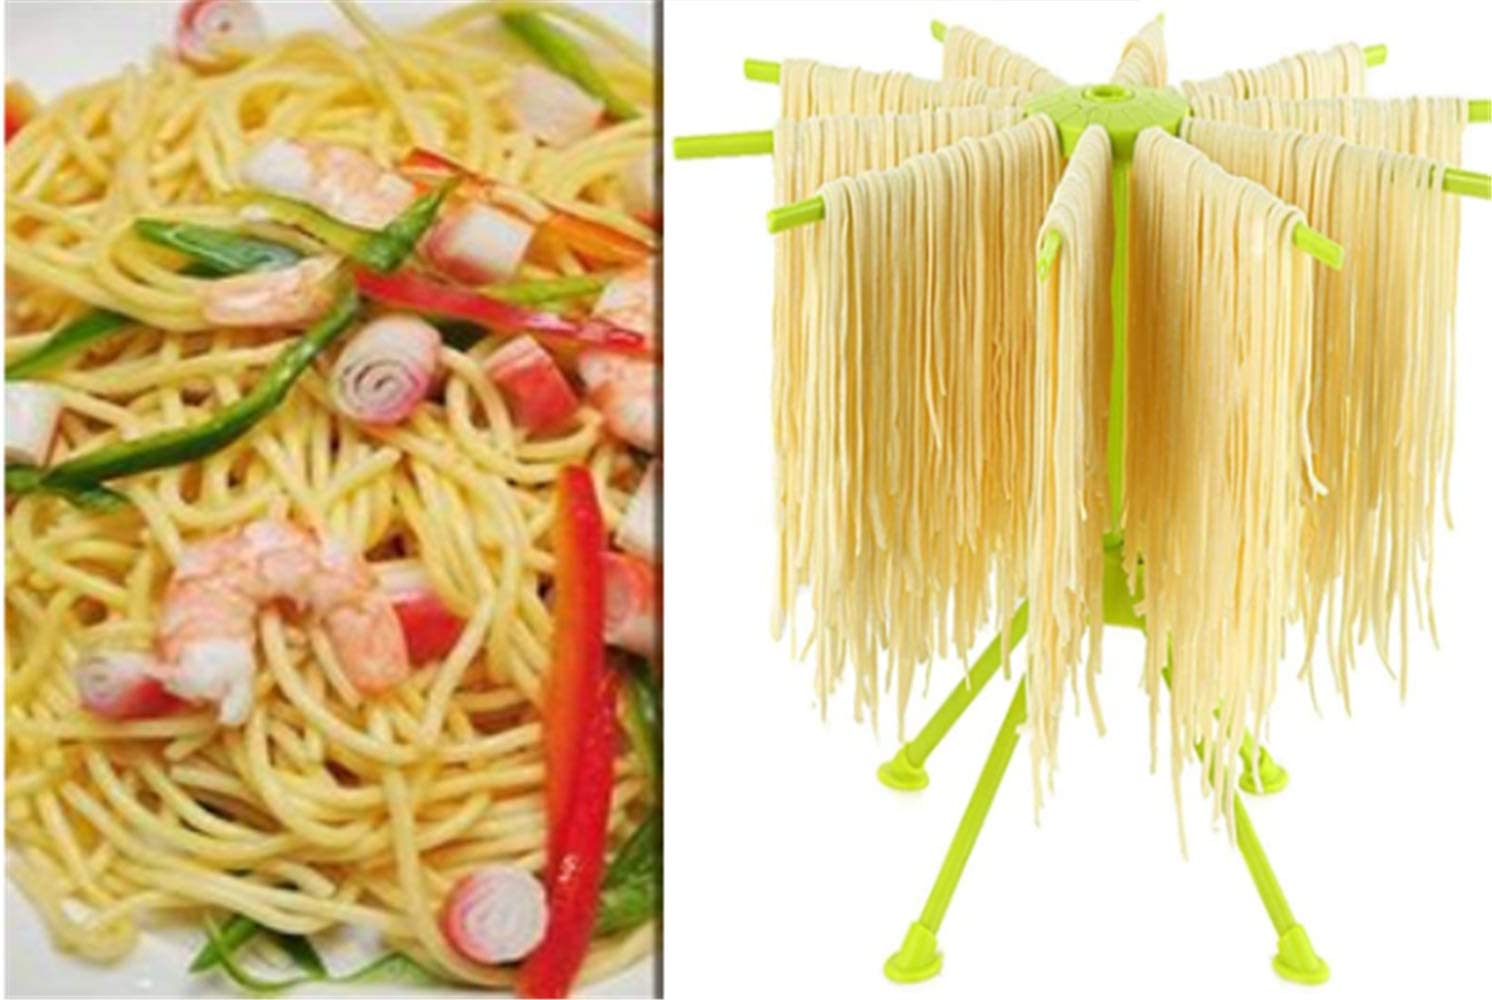 Fresh Homemade Pasta Rack Collapsible Drying Holder with Large Space for Spaghetti Linguine Tagliatelle Noodles